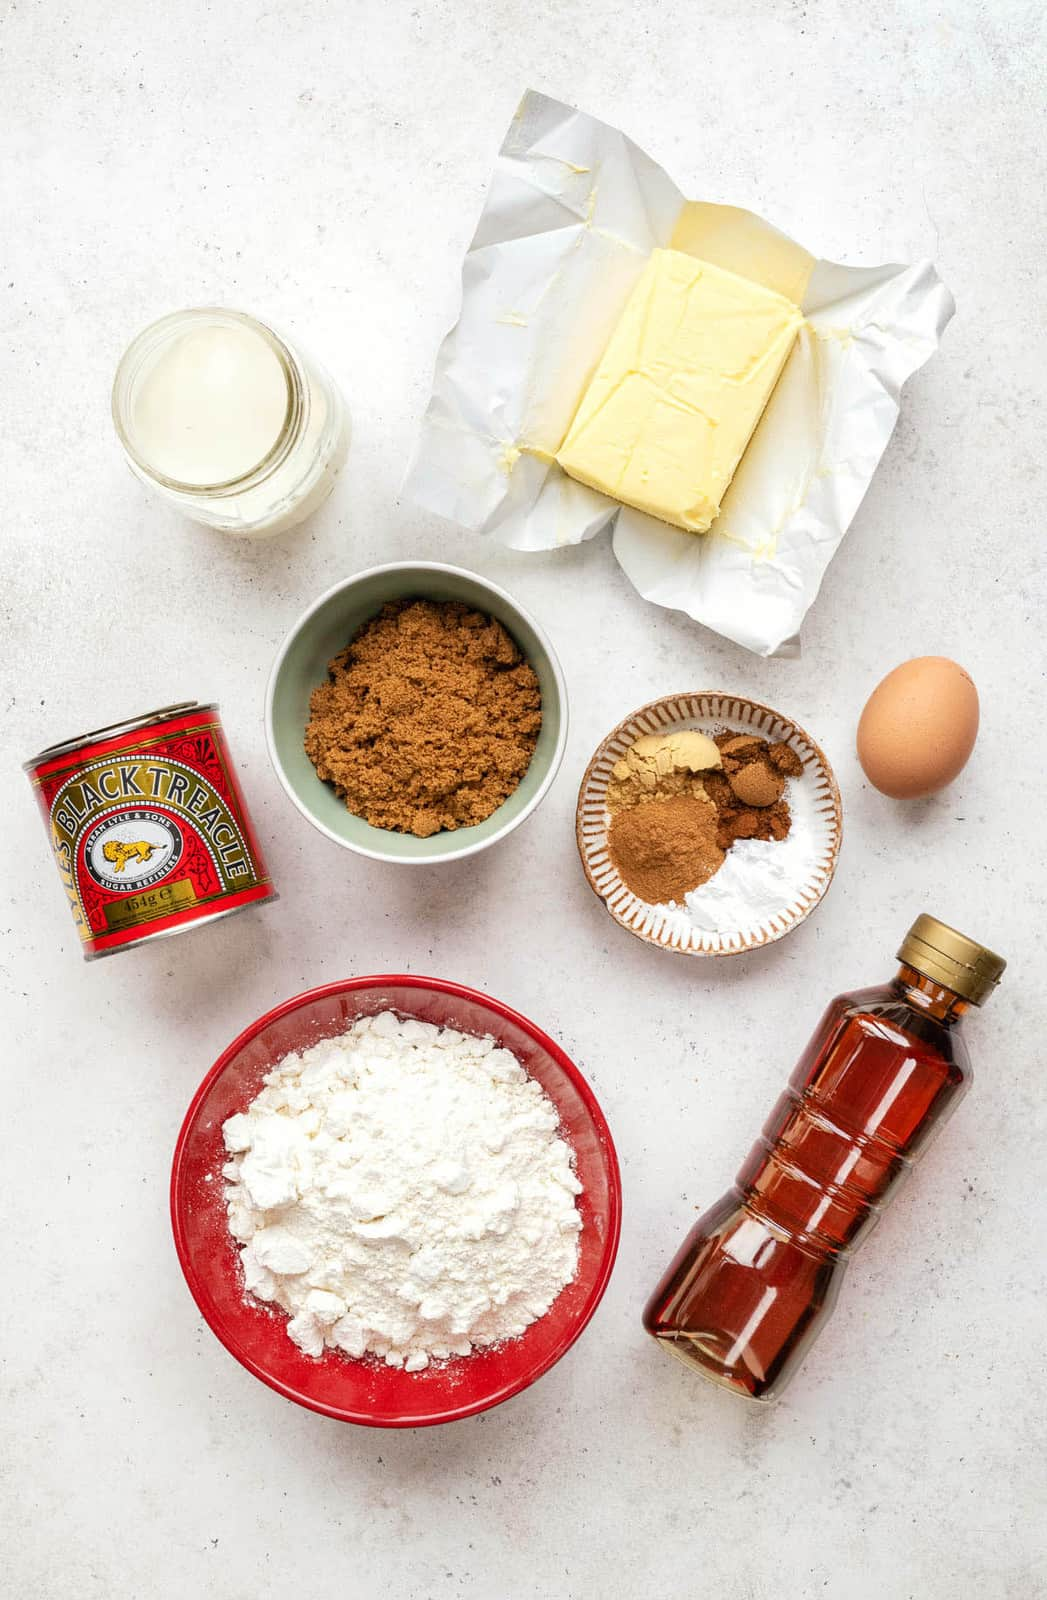 Ginger Cake Ingredients